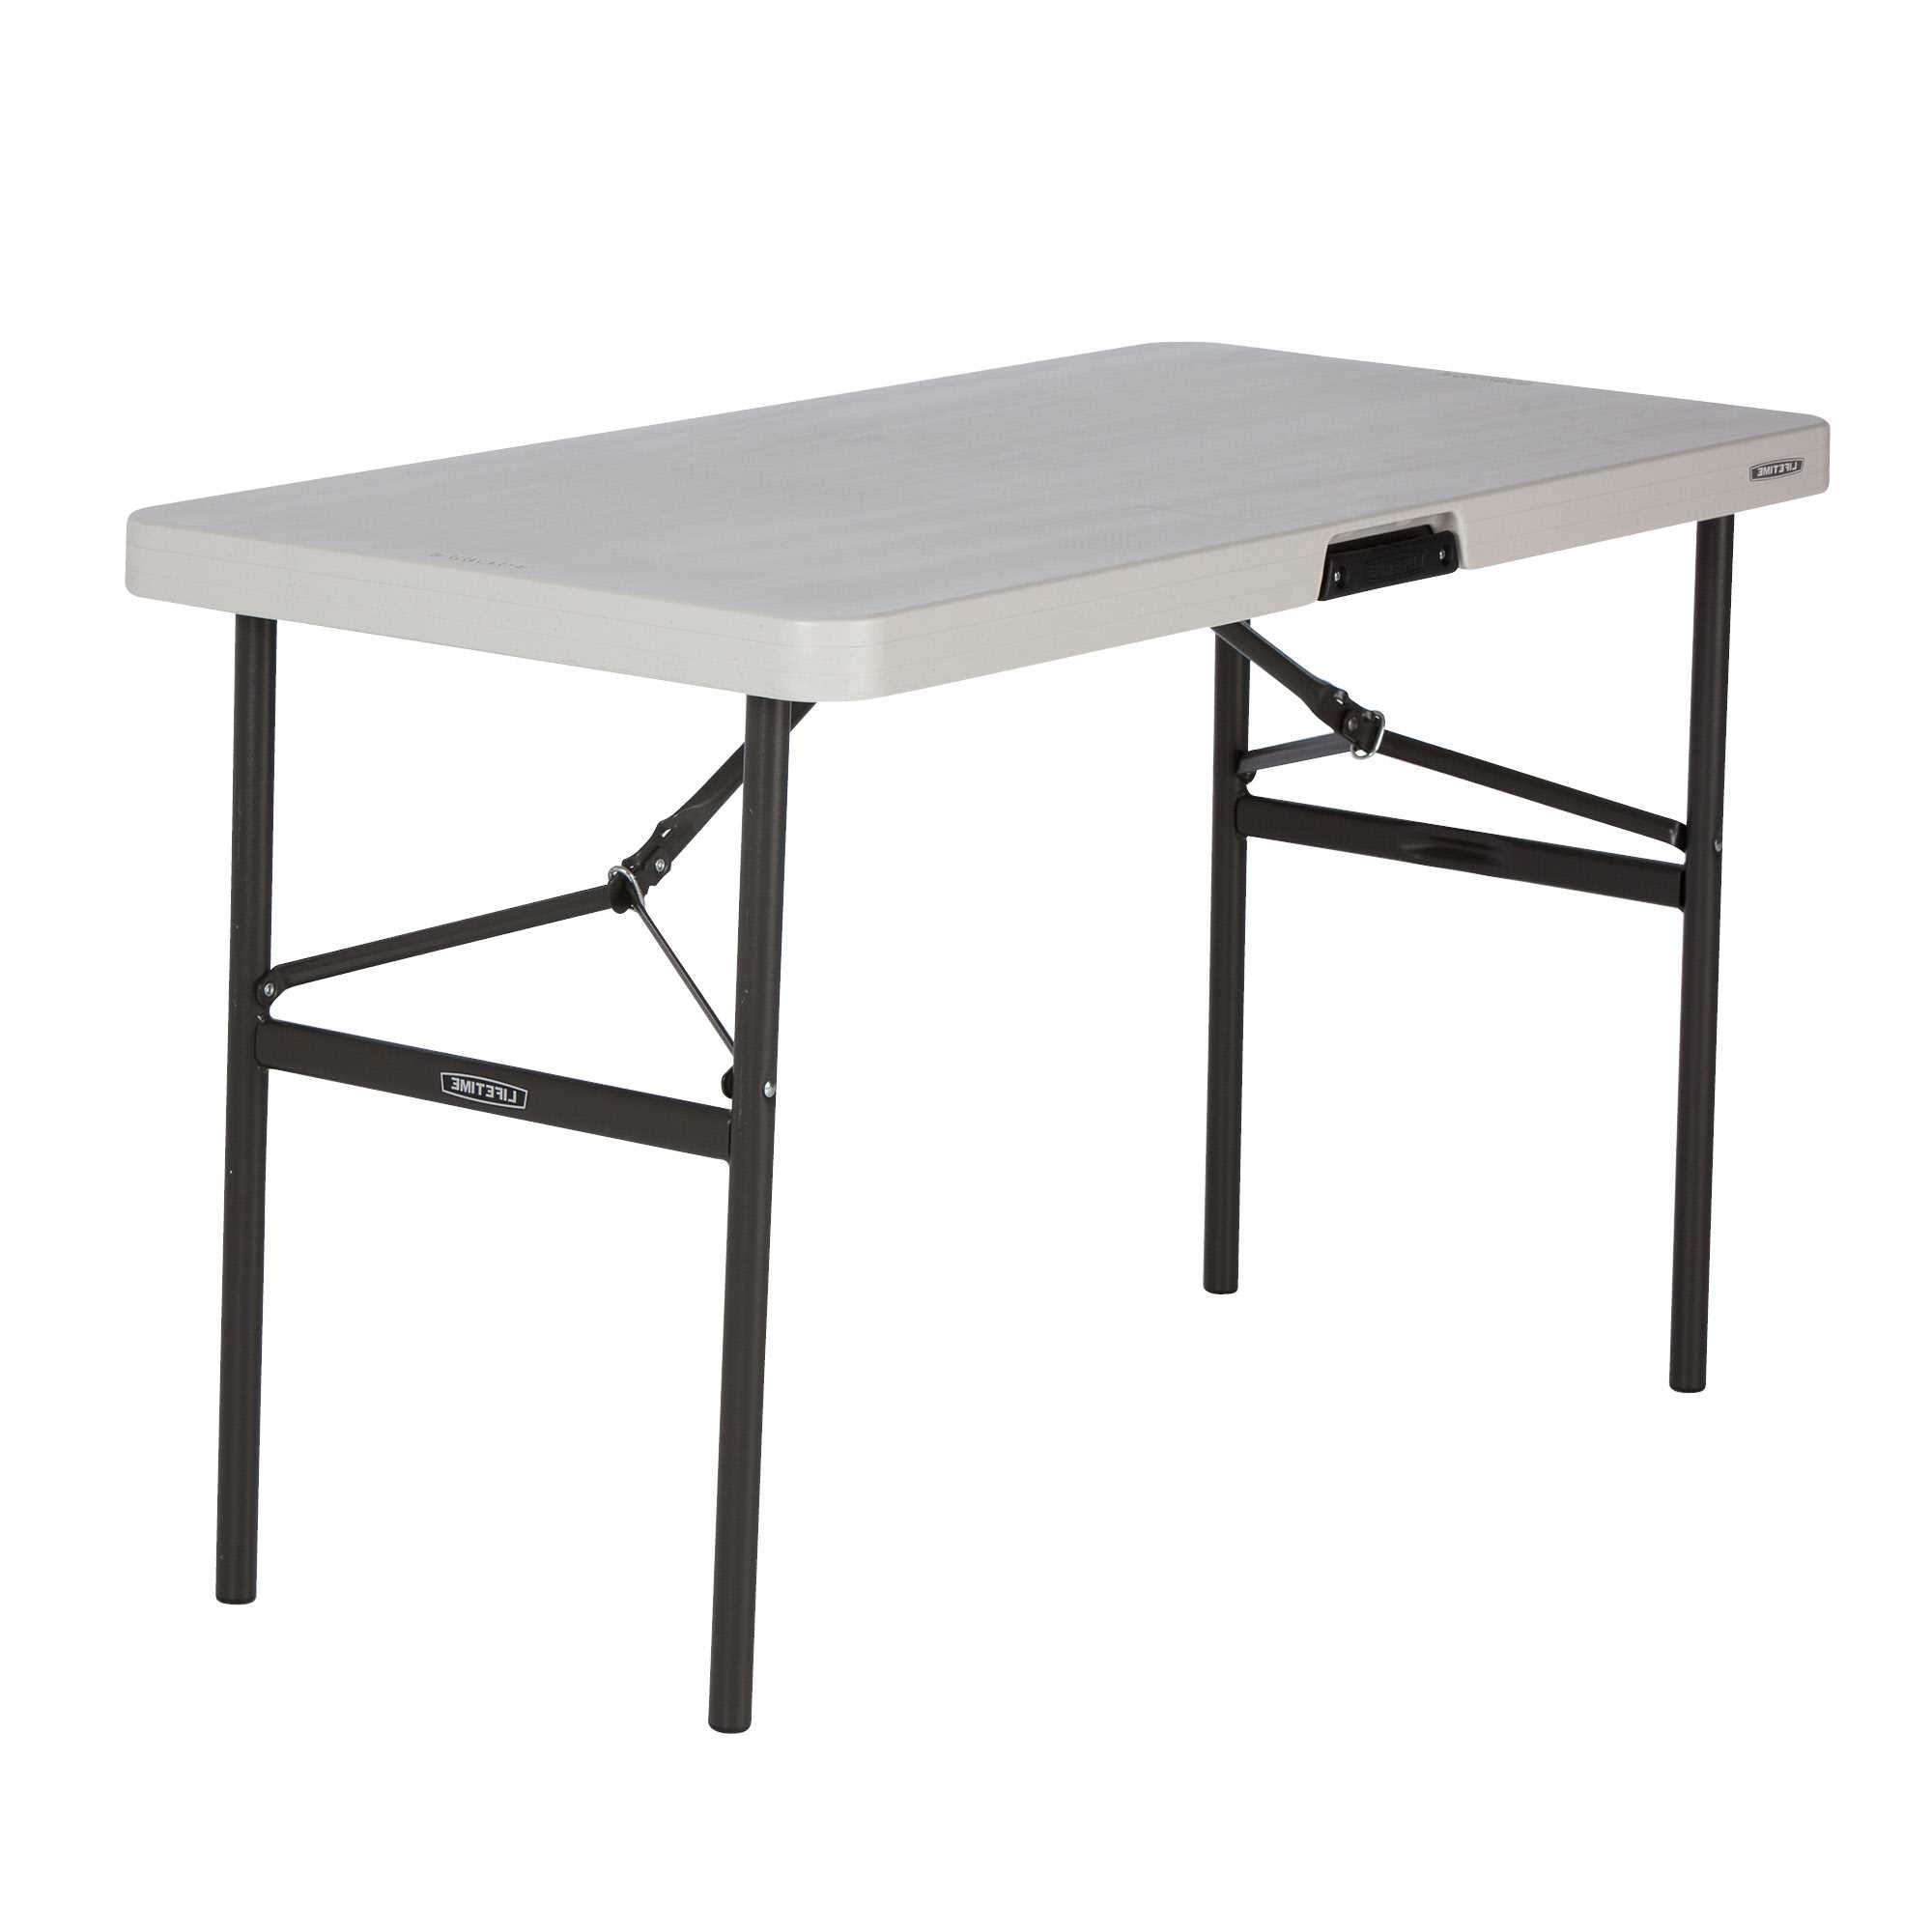 Table pliante 10 personnes maison design for Table pliante murale 4 personnes